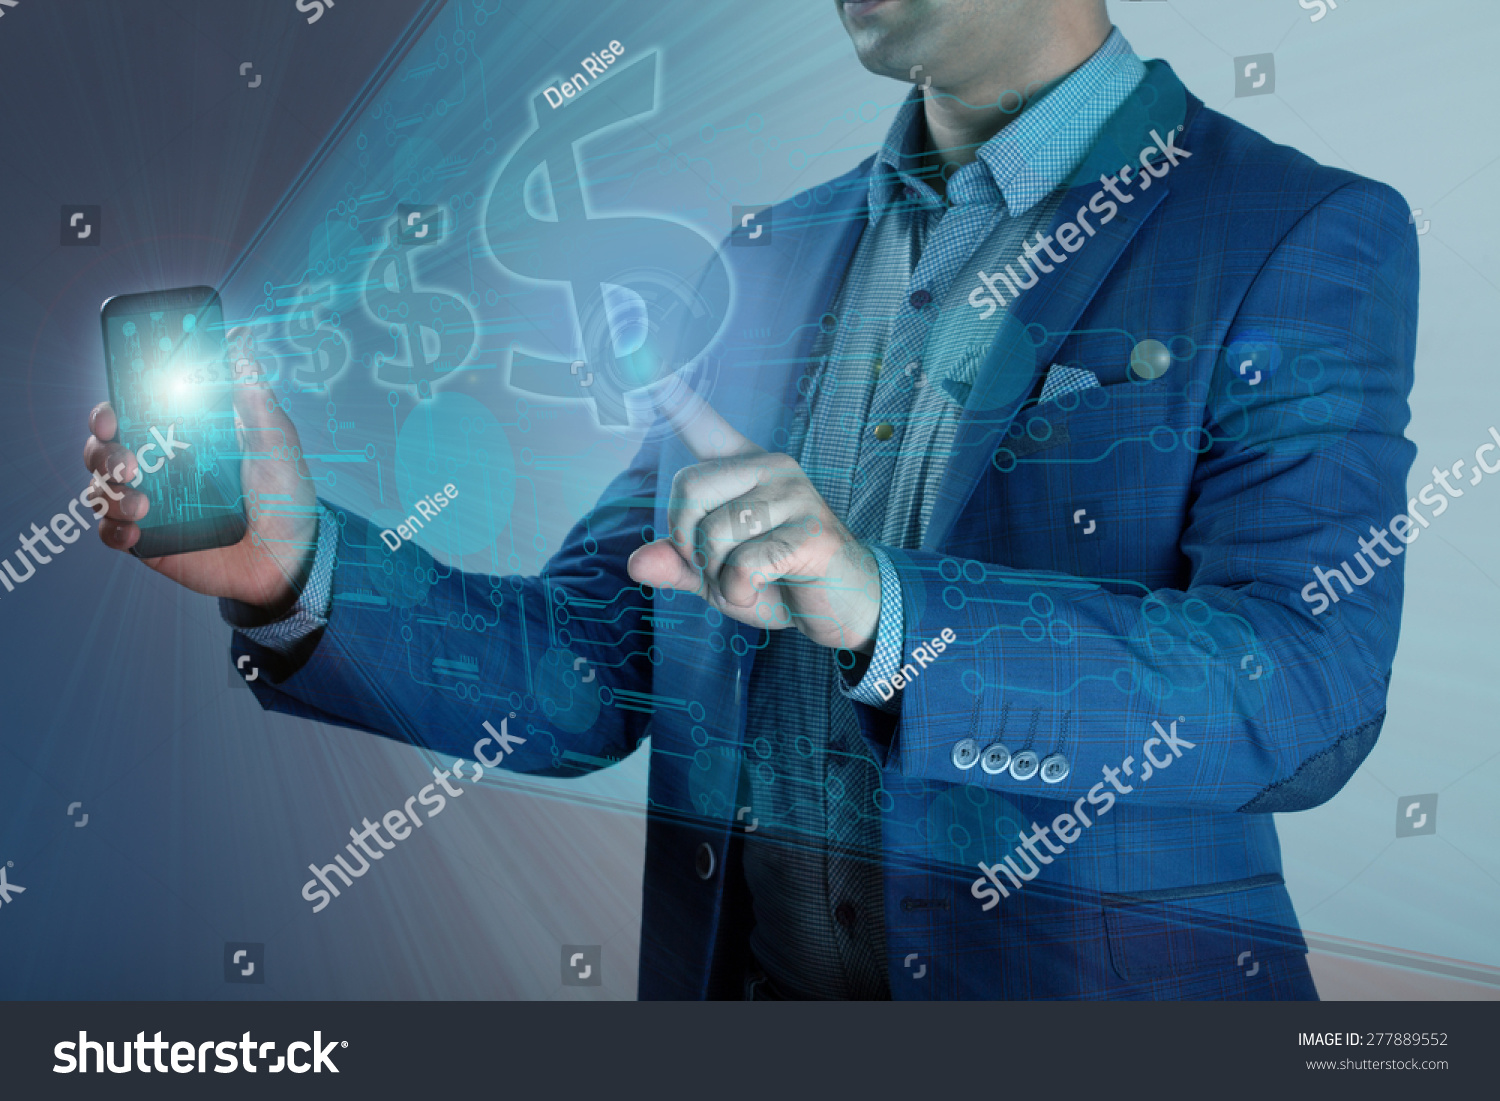 how to make money in computer networking